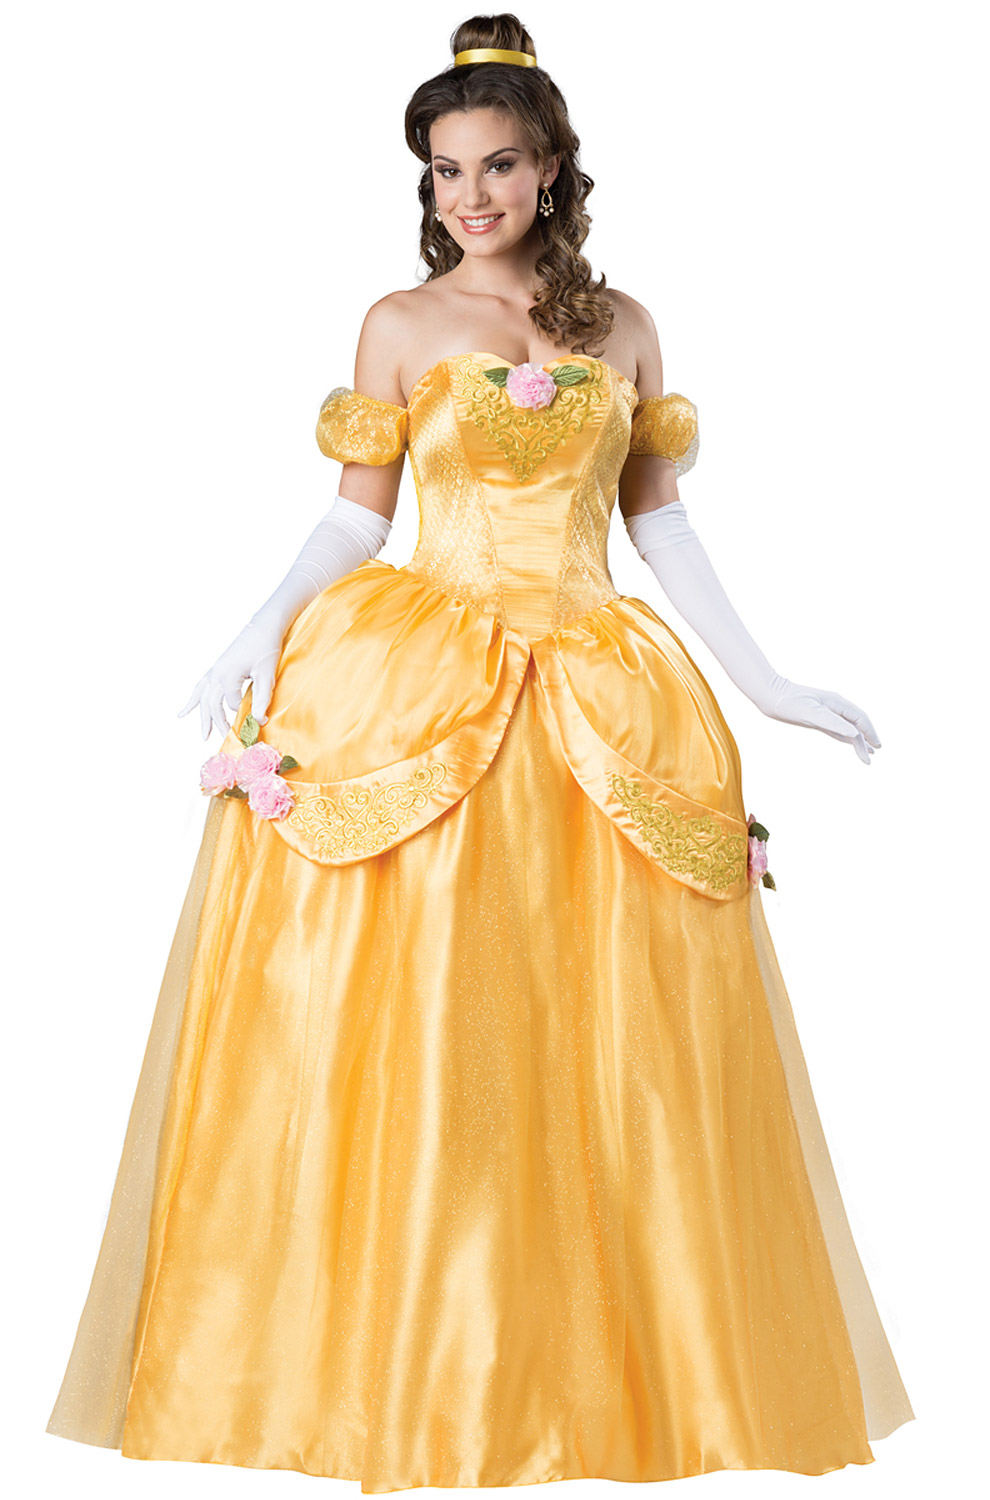 Adult storybook princess belle costume